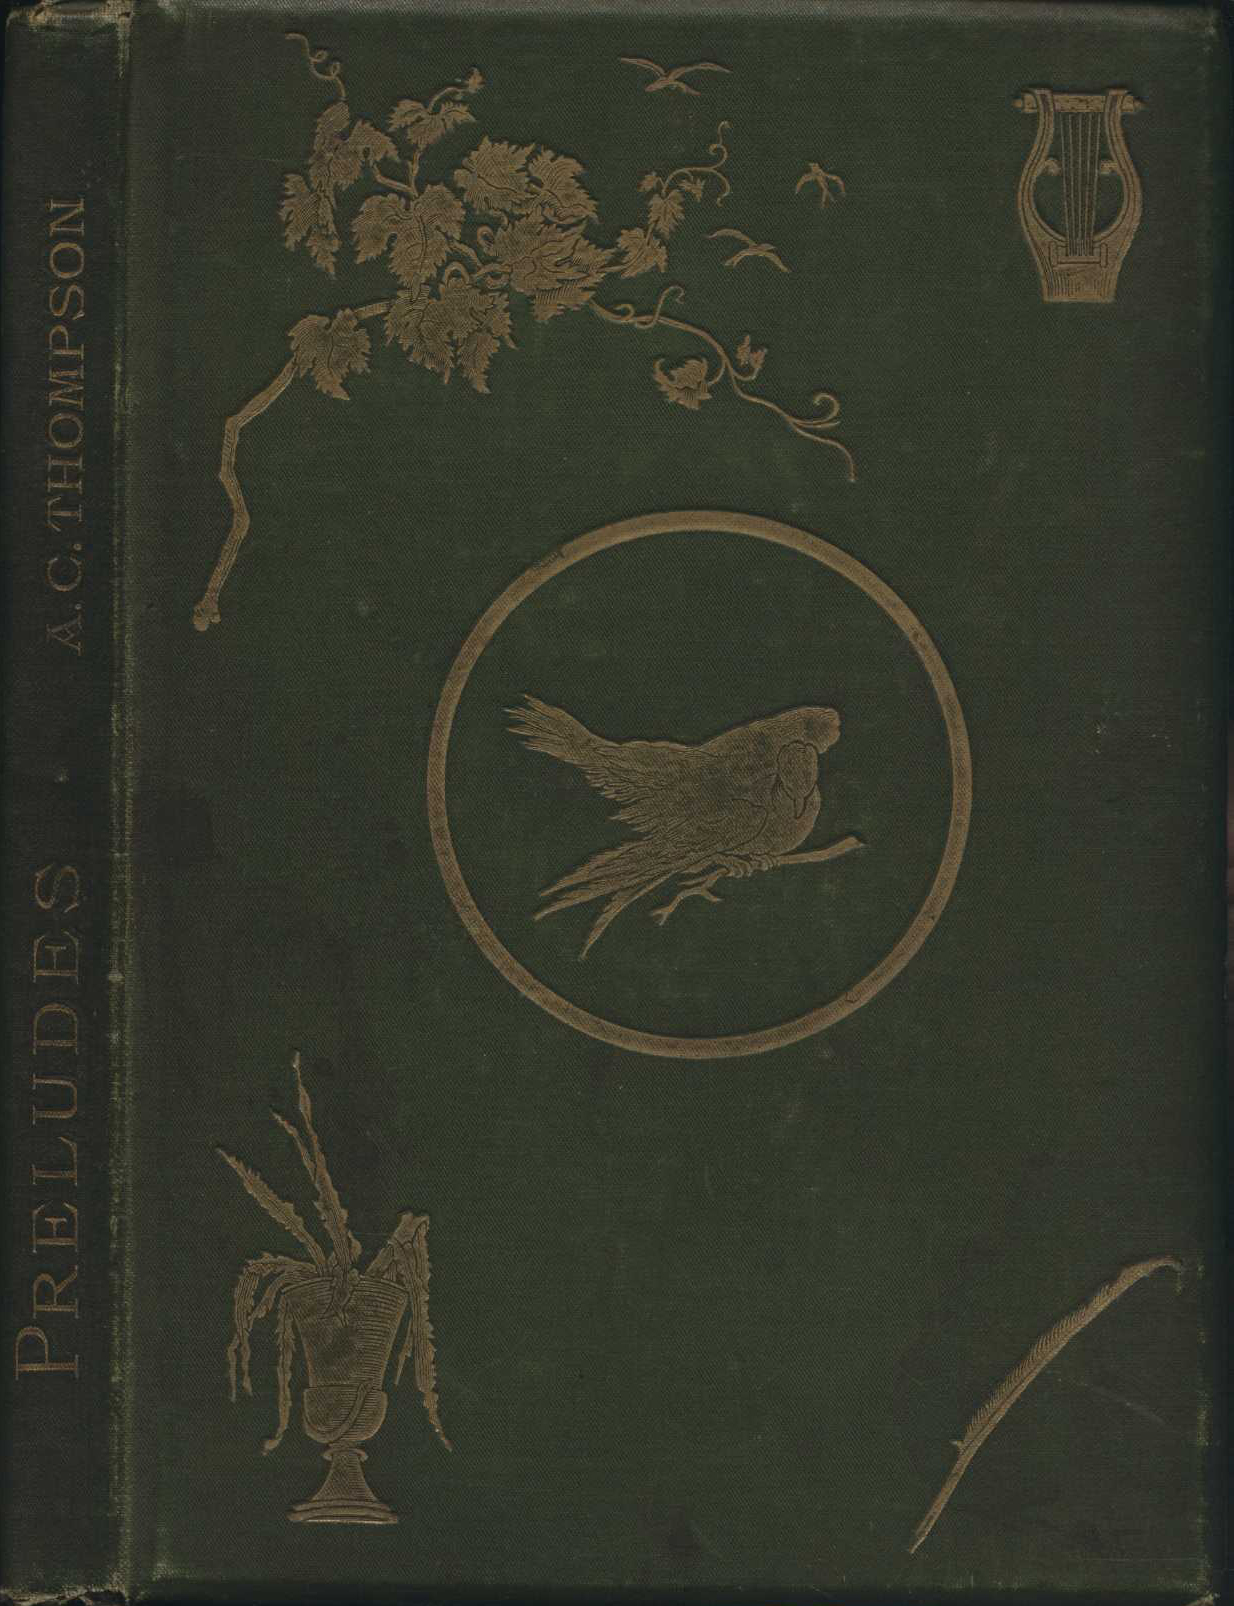 Alice Christiana Thompson Meynell. Preludes. London: Henry S. King, 1875.